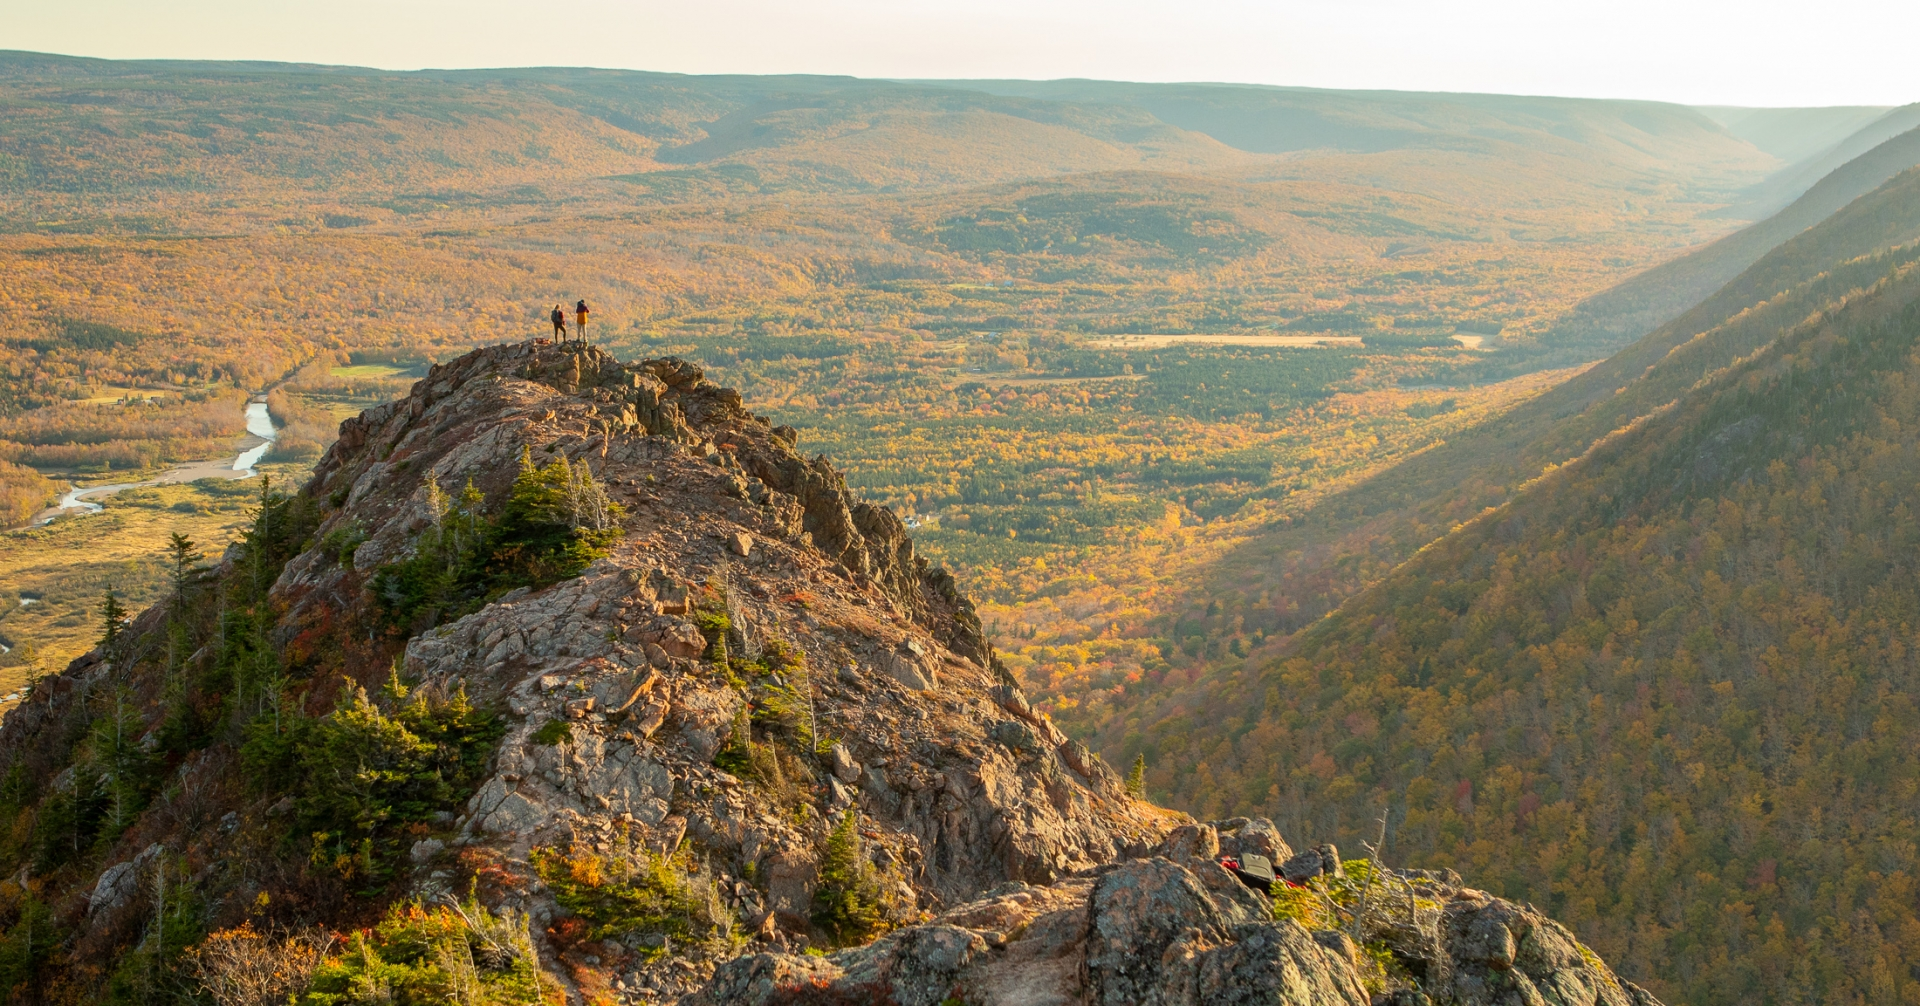 5 Challenging Hikes To Do This Fall